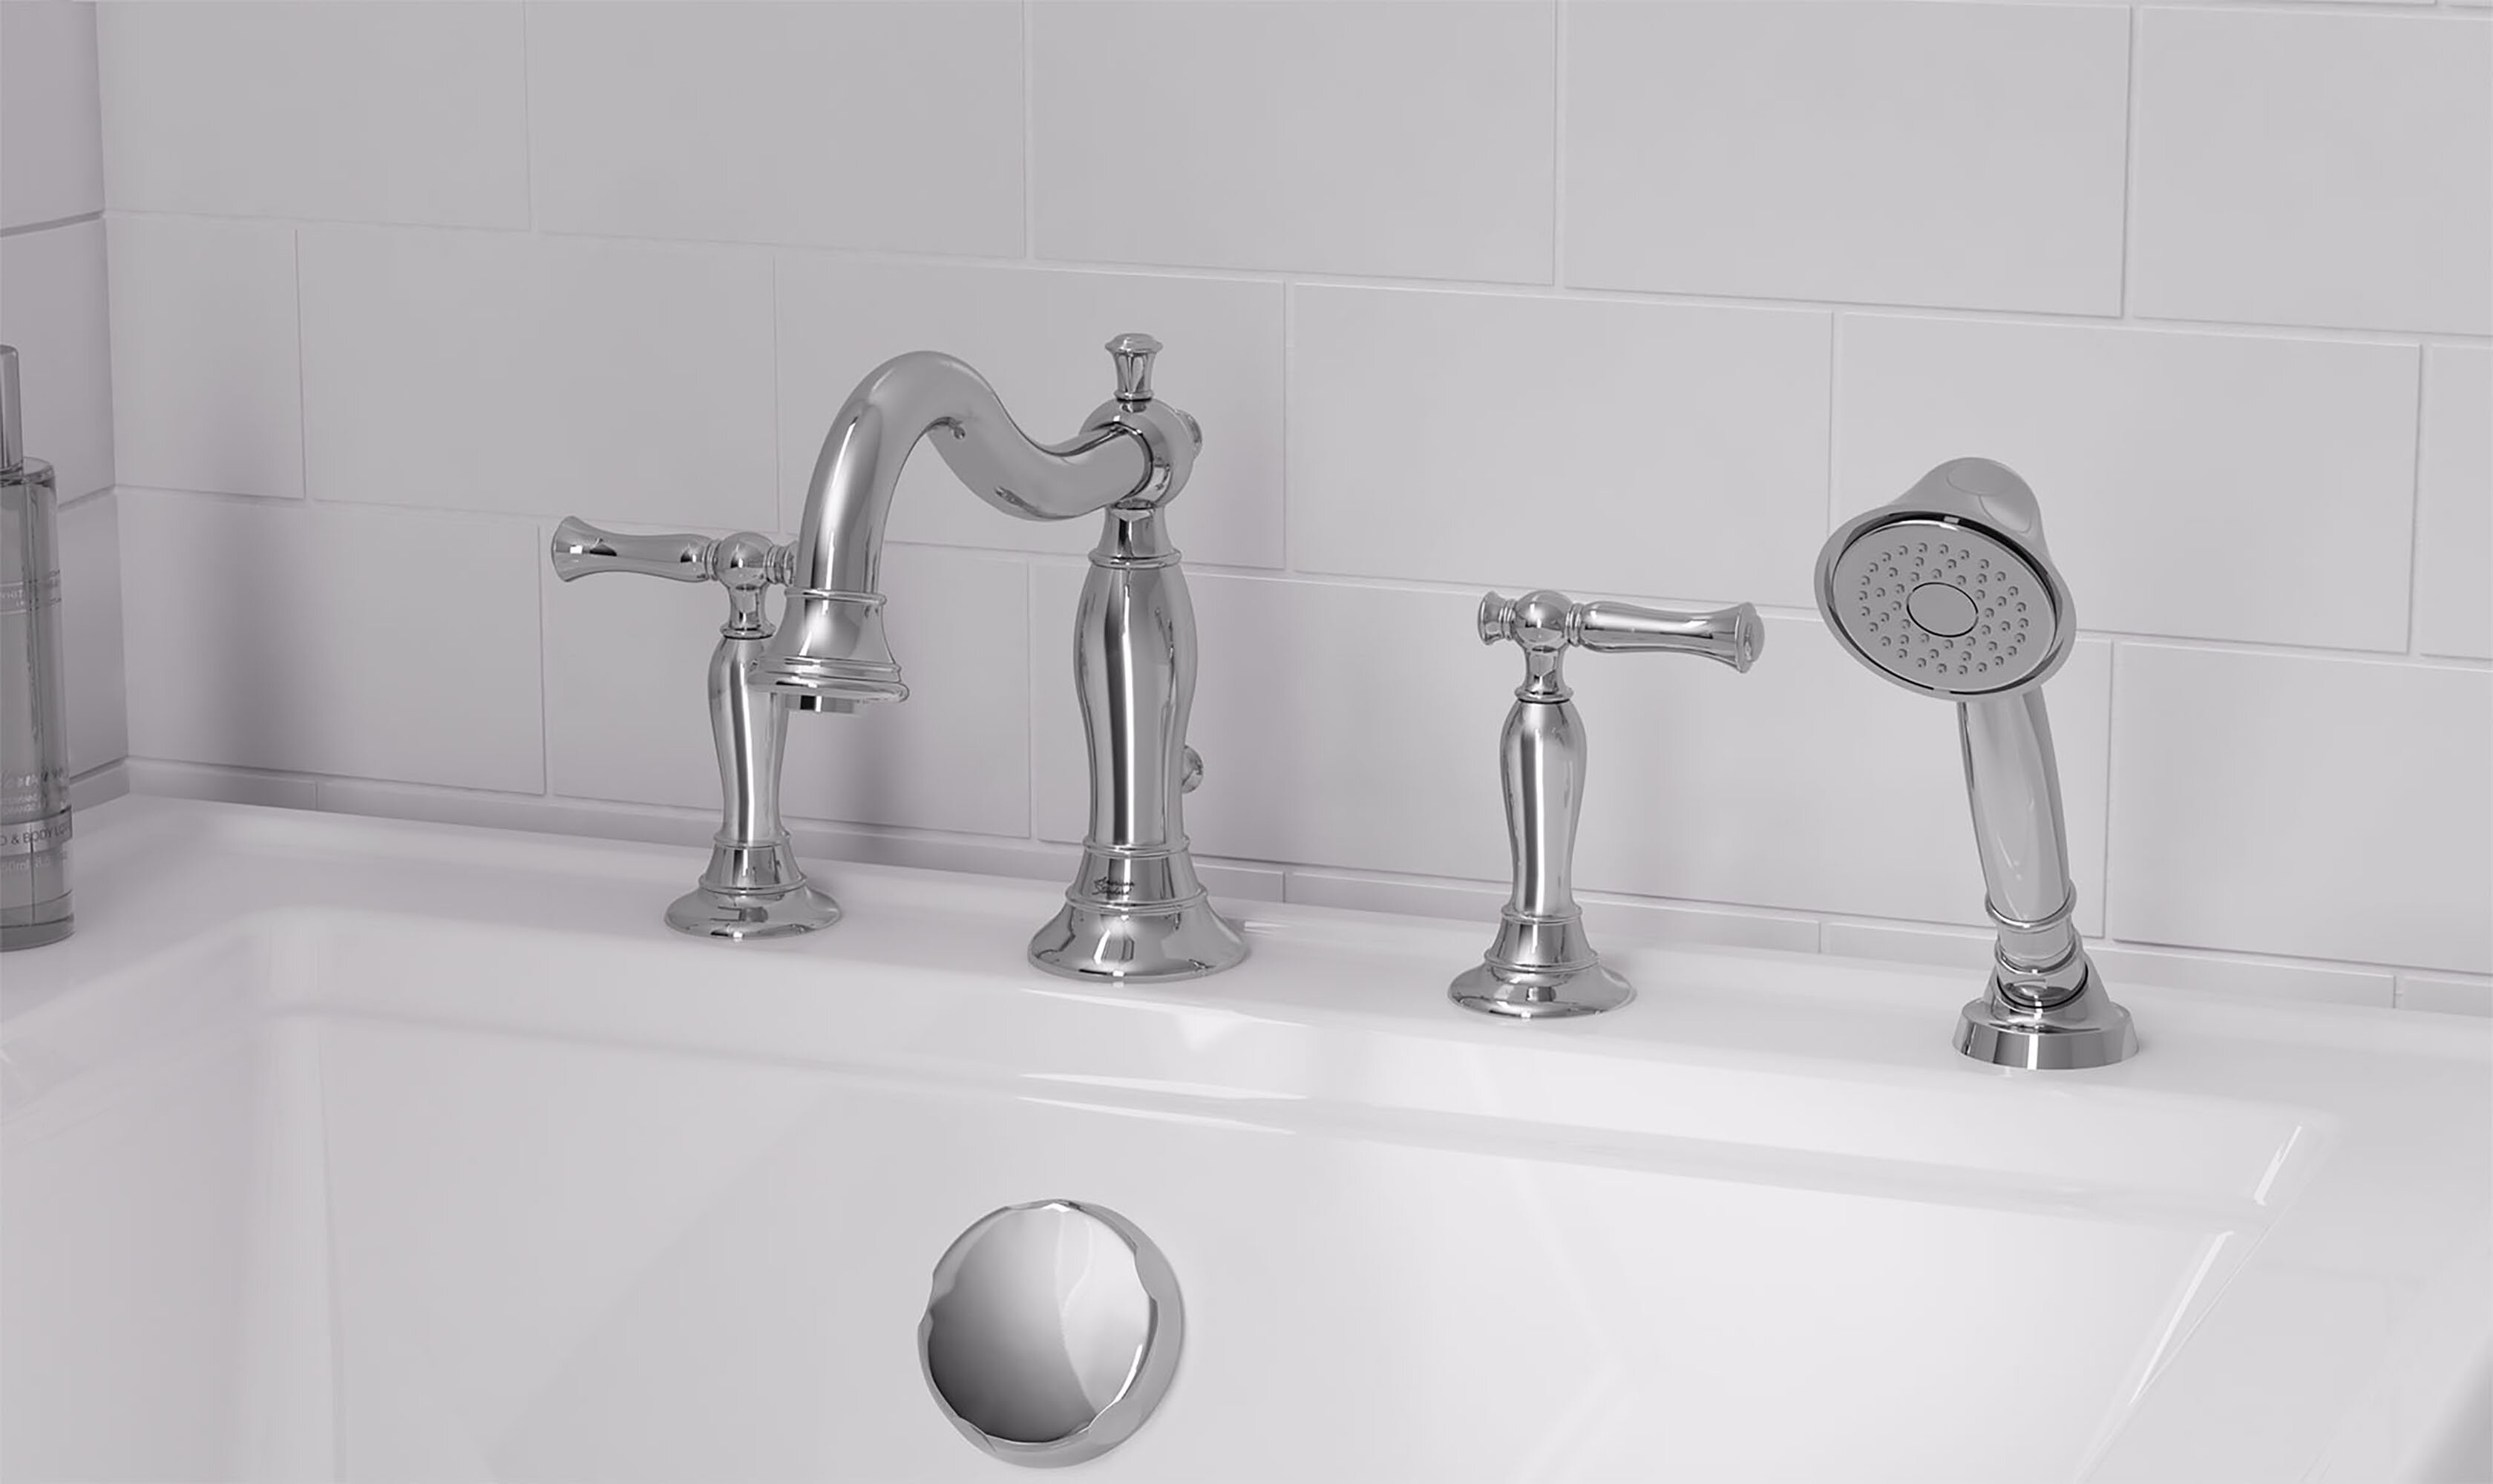 Quentin Double Handle Deck Mounted Roman Tub Faucet Trim With Handshower